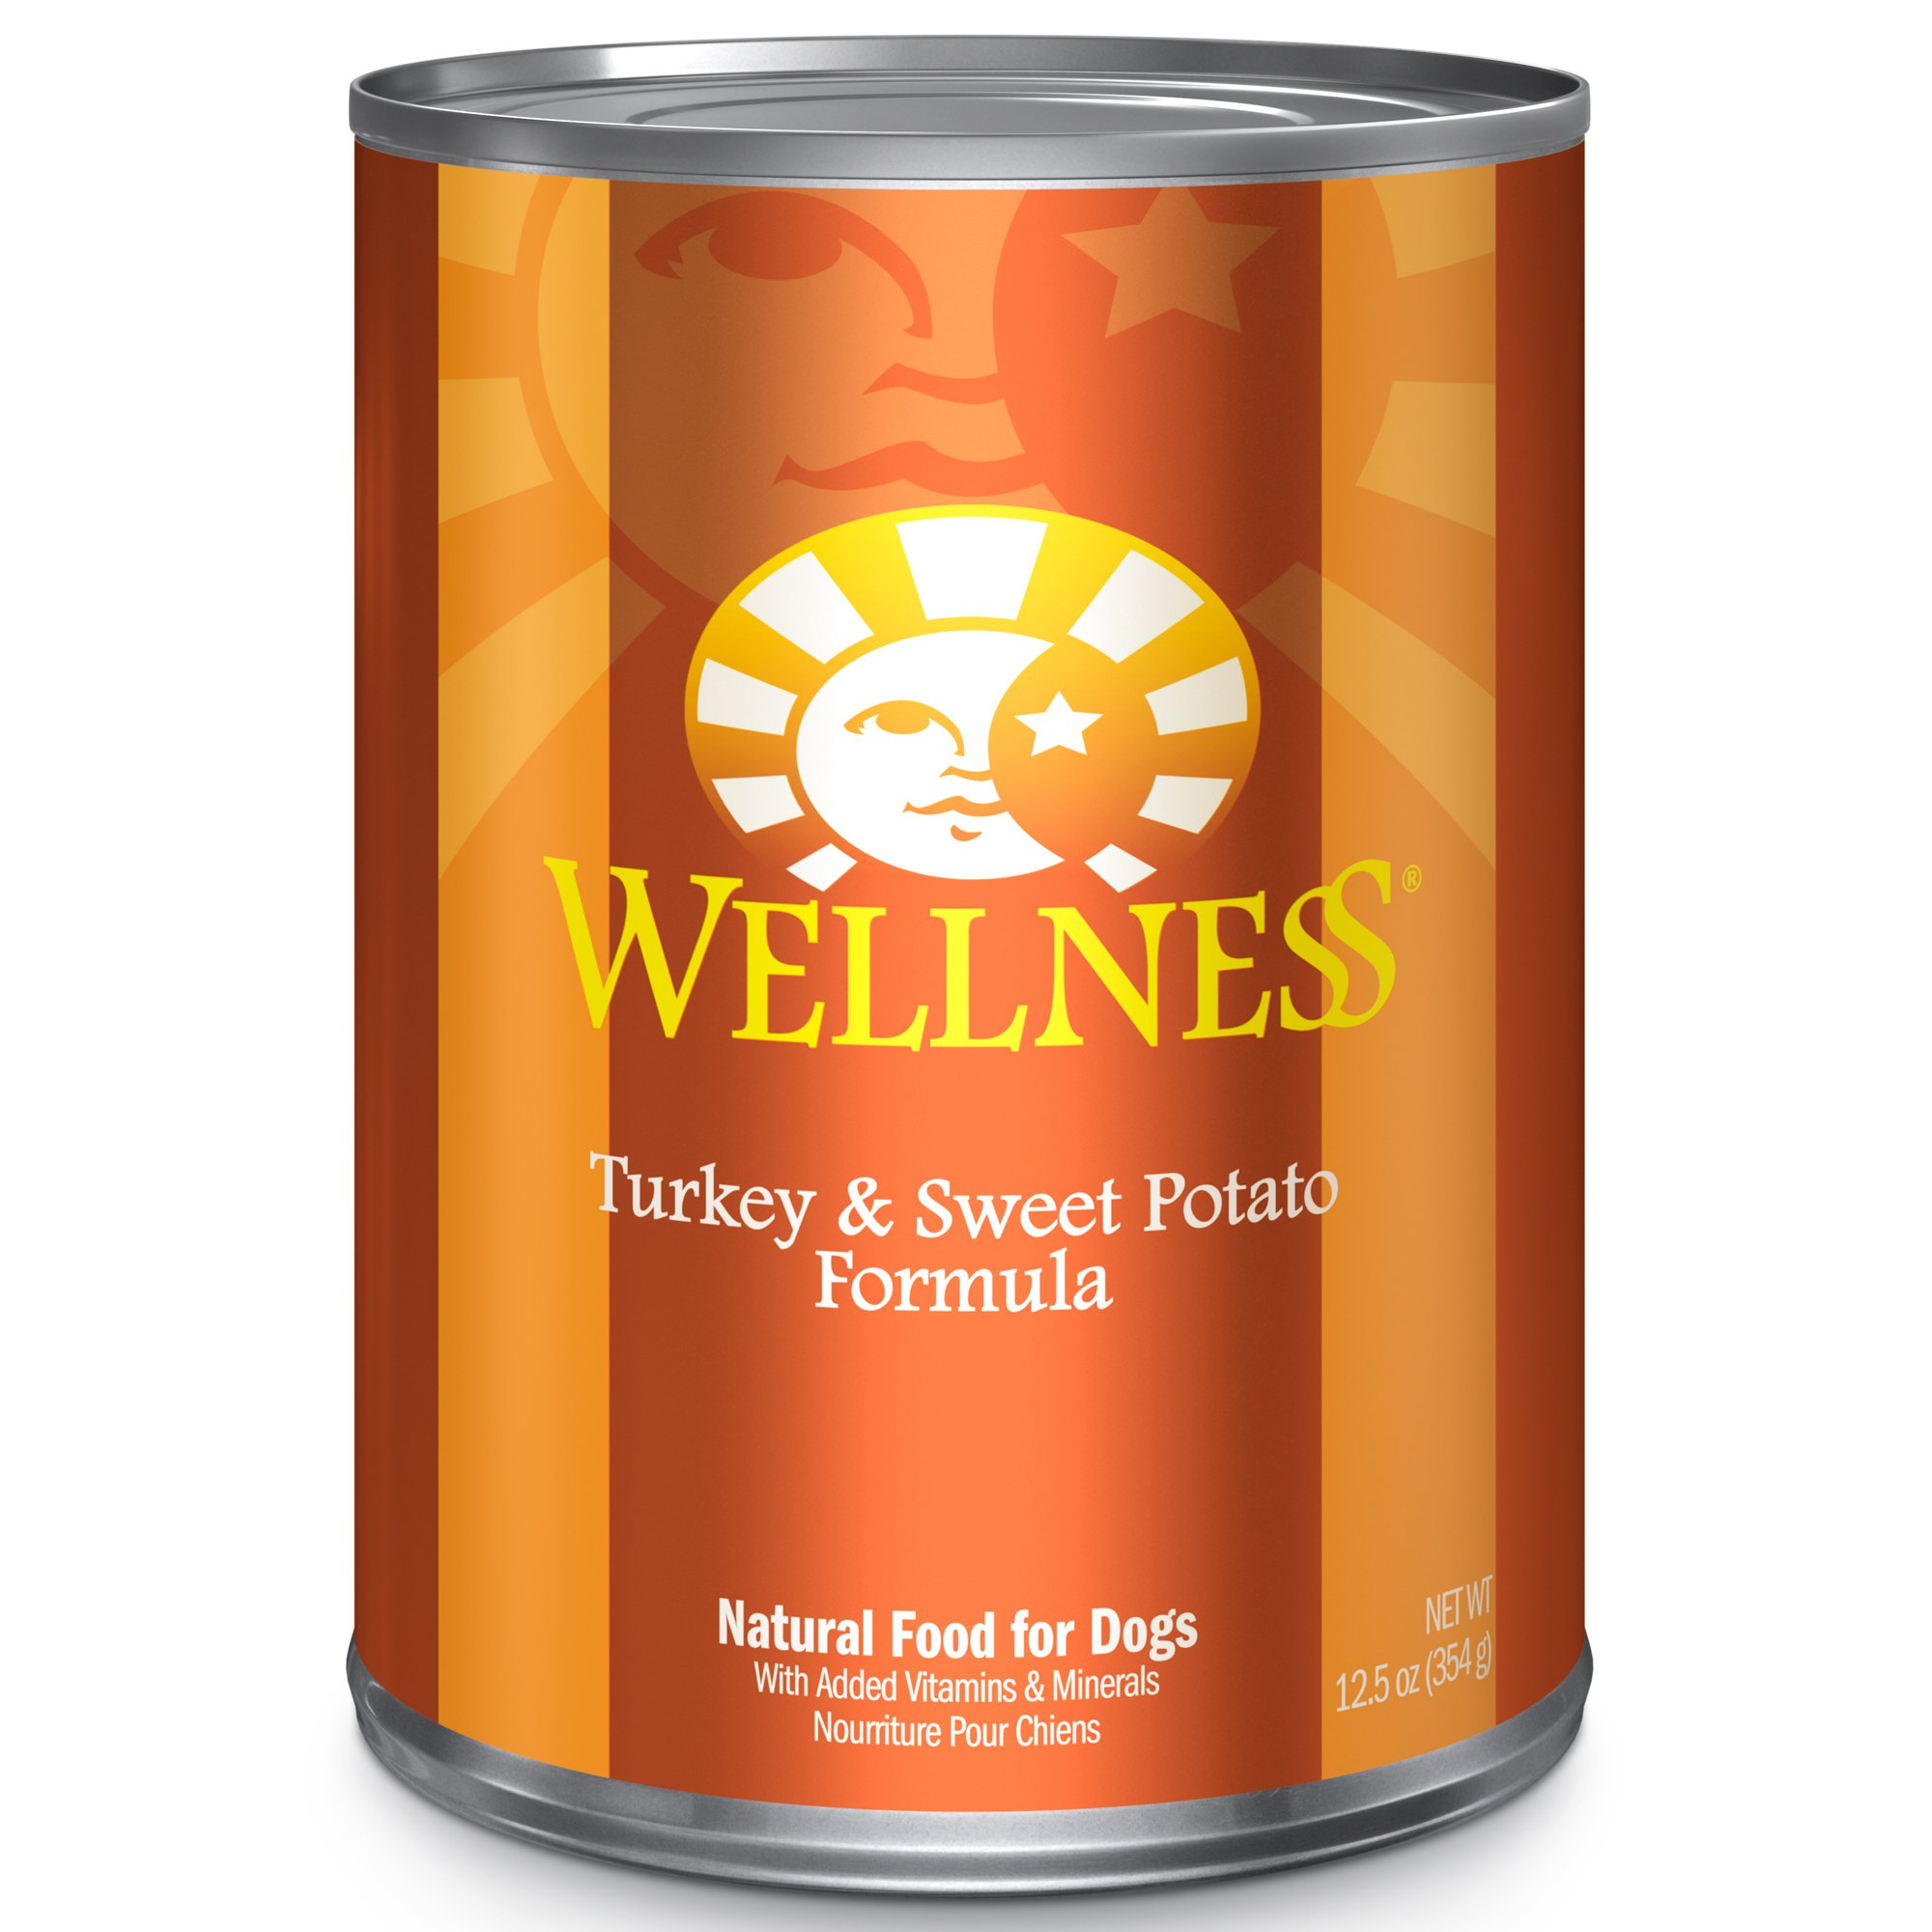 Wellness Complete Health Natural Wet Canned Dog Food, Turkey & Sweet Potato, 12.5-Ounce Can (Pack Of 12) by Wellness Natural Pet Food